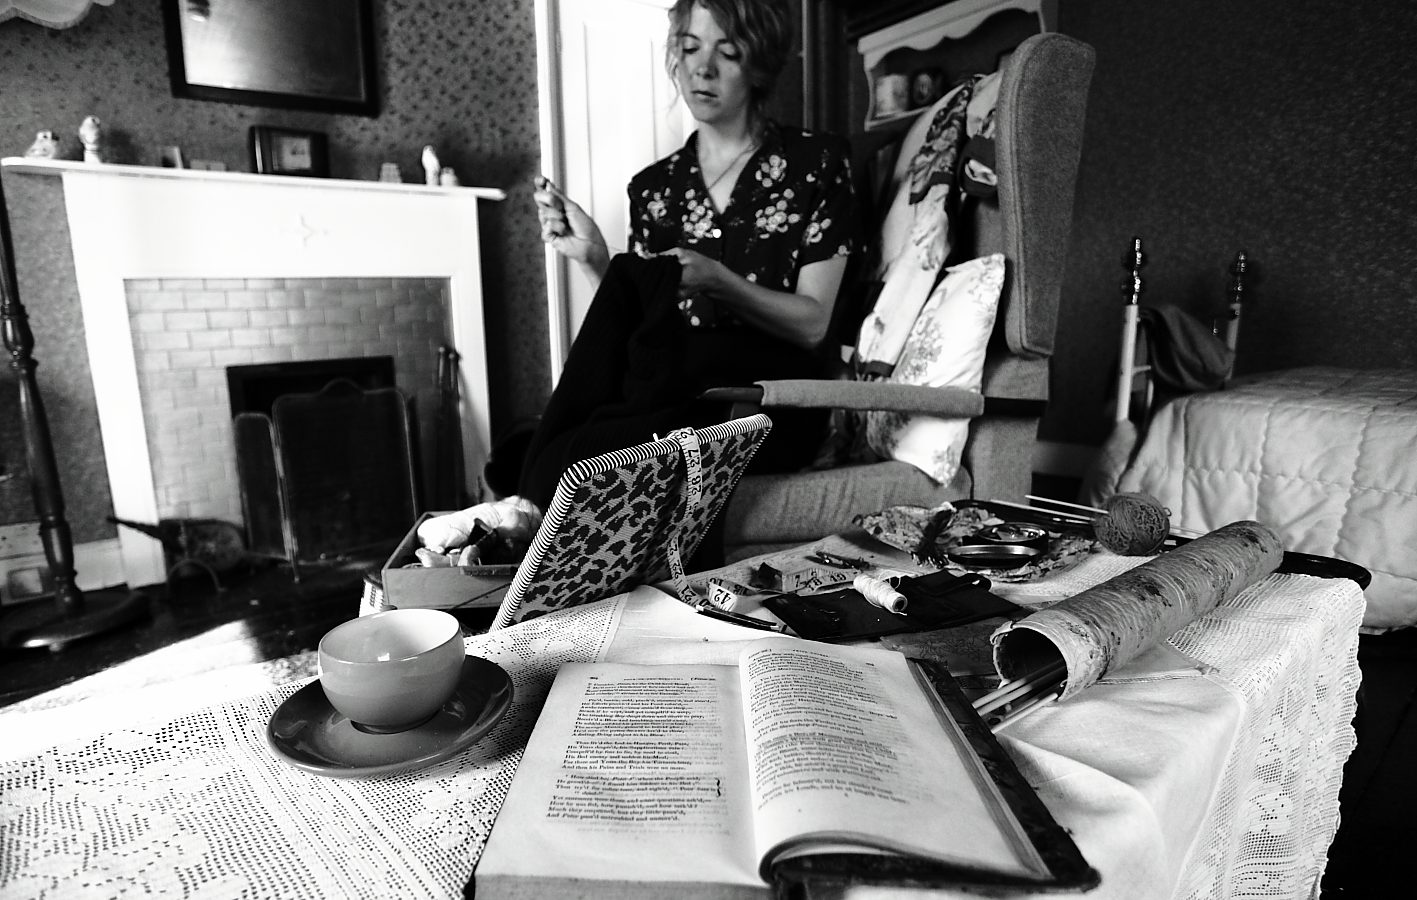 Woman sewing in the background; table with books, cups and various items in foreground